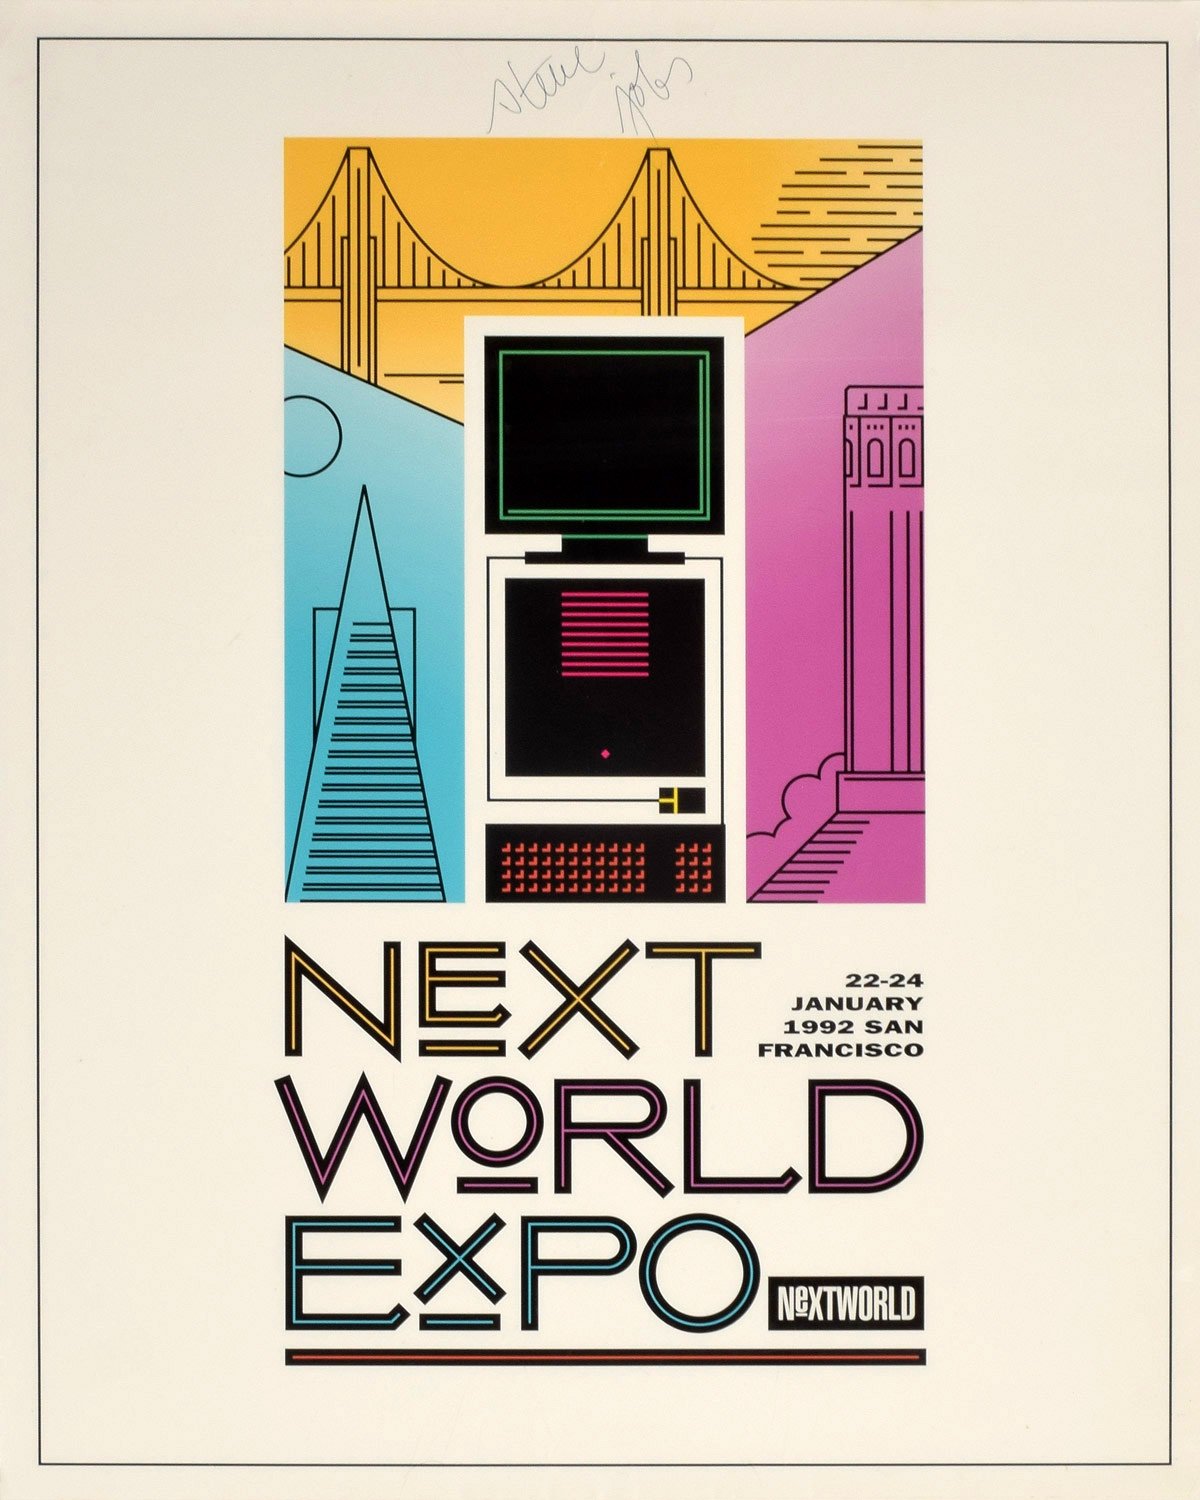 Steve Jobs NeXTWORLD poster